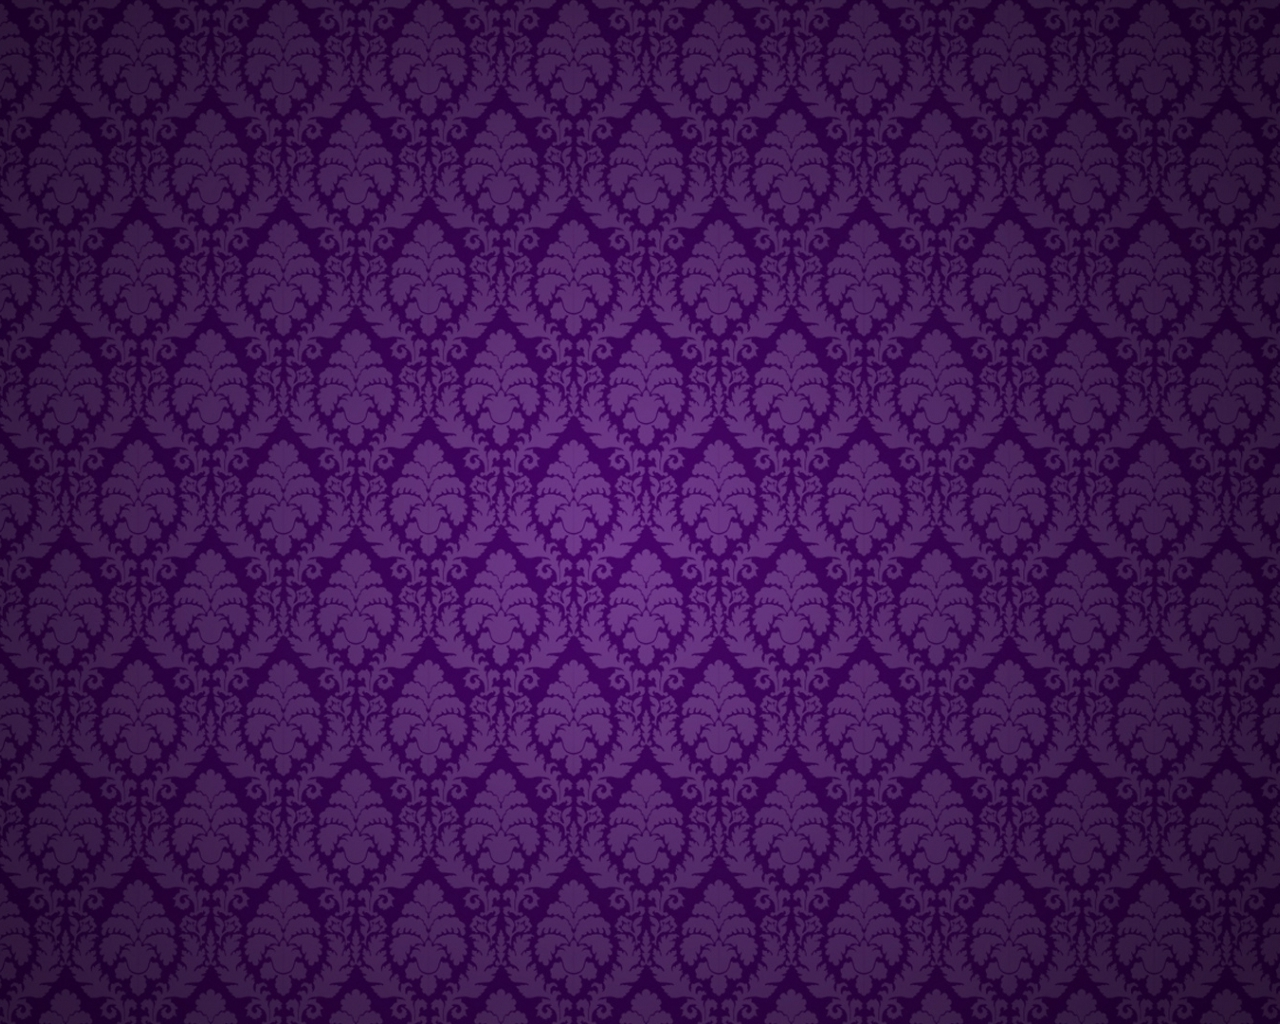 Free Download Download Purple Floral Texture Wallpaper In Textures